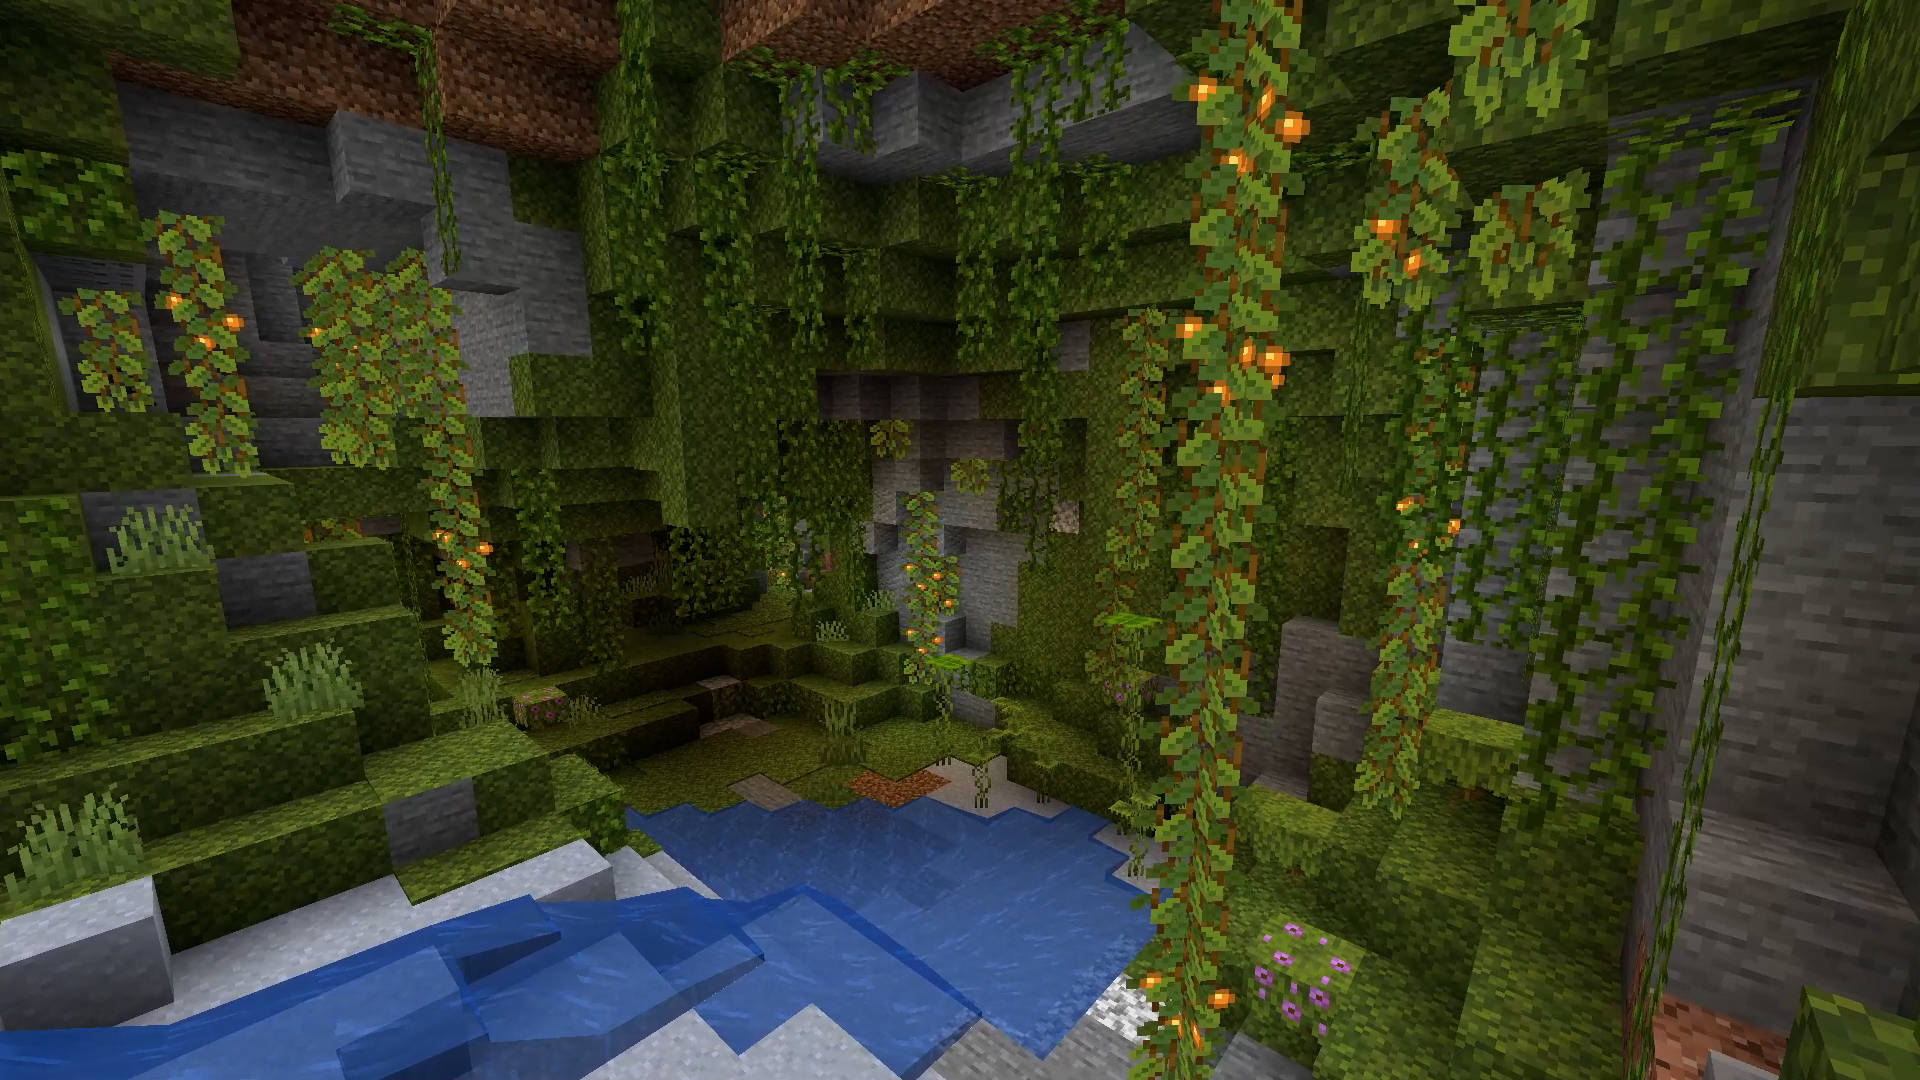 Minecraft's Caves & Cliffs update being broken up into two expansions | EGM